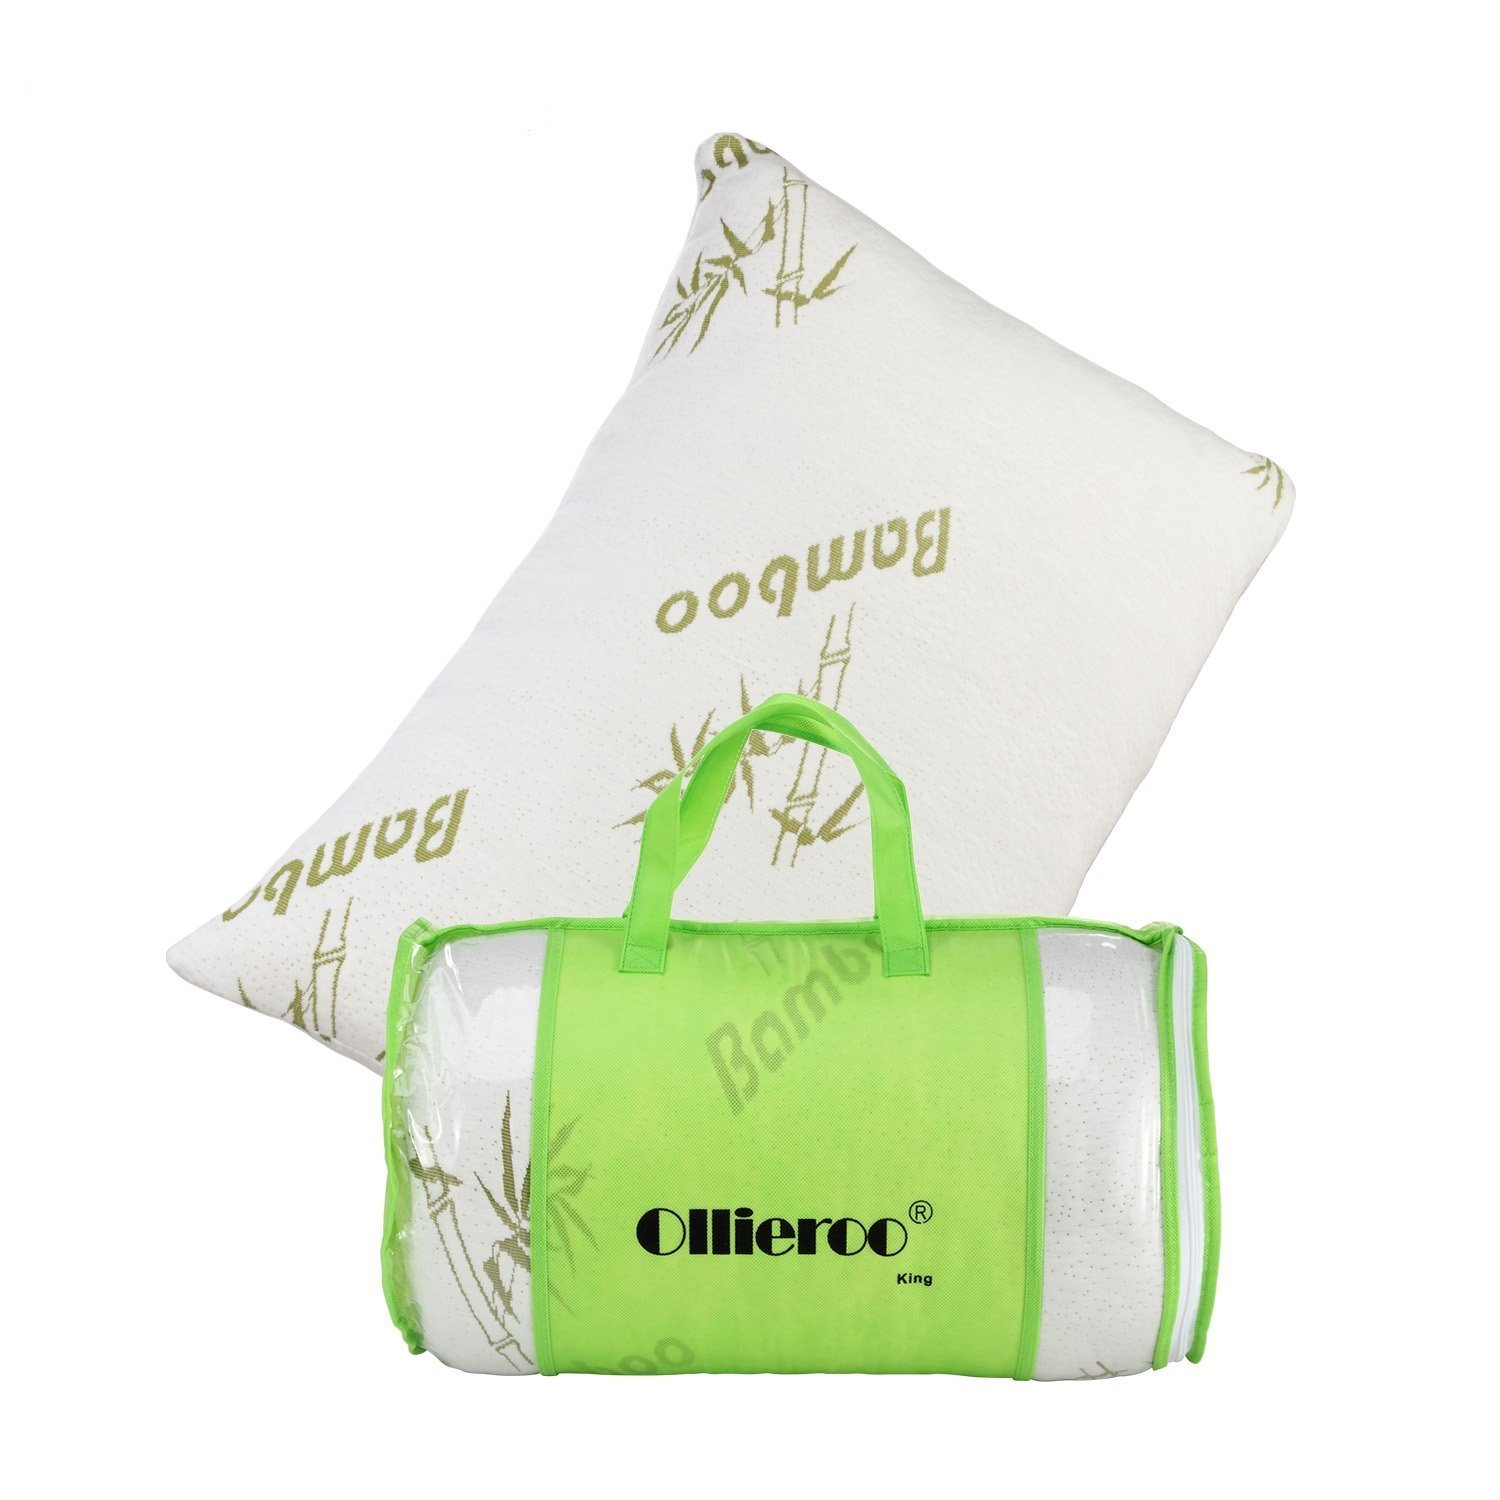 com sheets king comforters the comforter for qvc n bedding set travel c pillow mypillow bamboo roll home go of mlpu comfort more hotel pillows